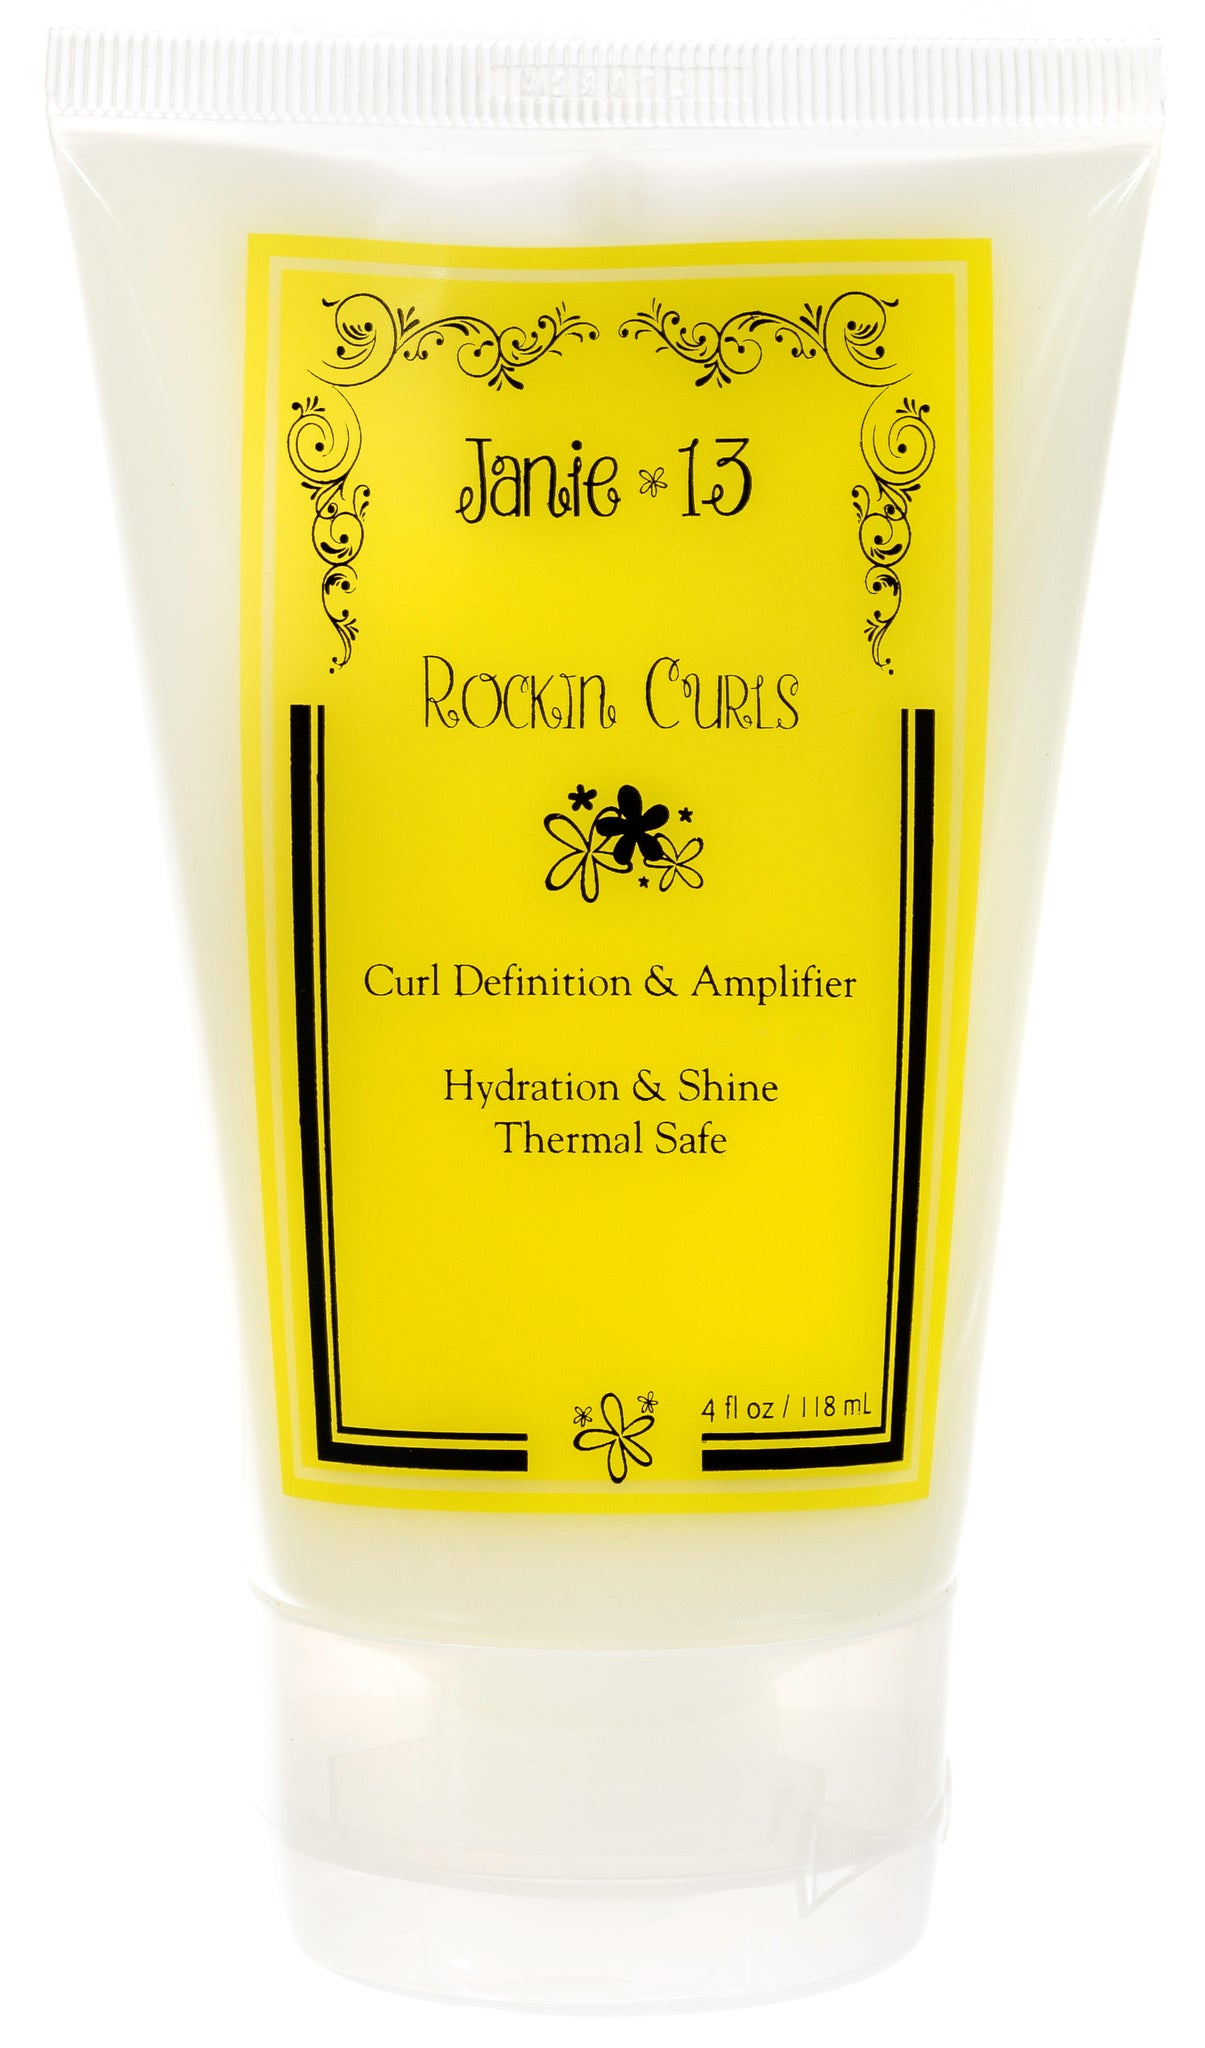 Rockin Curl's   4.oz - Janie 13 Hair Products best hair products for sulphate free shampoo and gluten free products